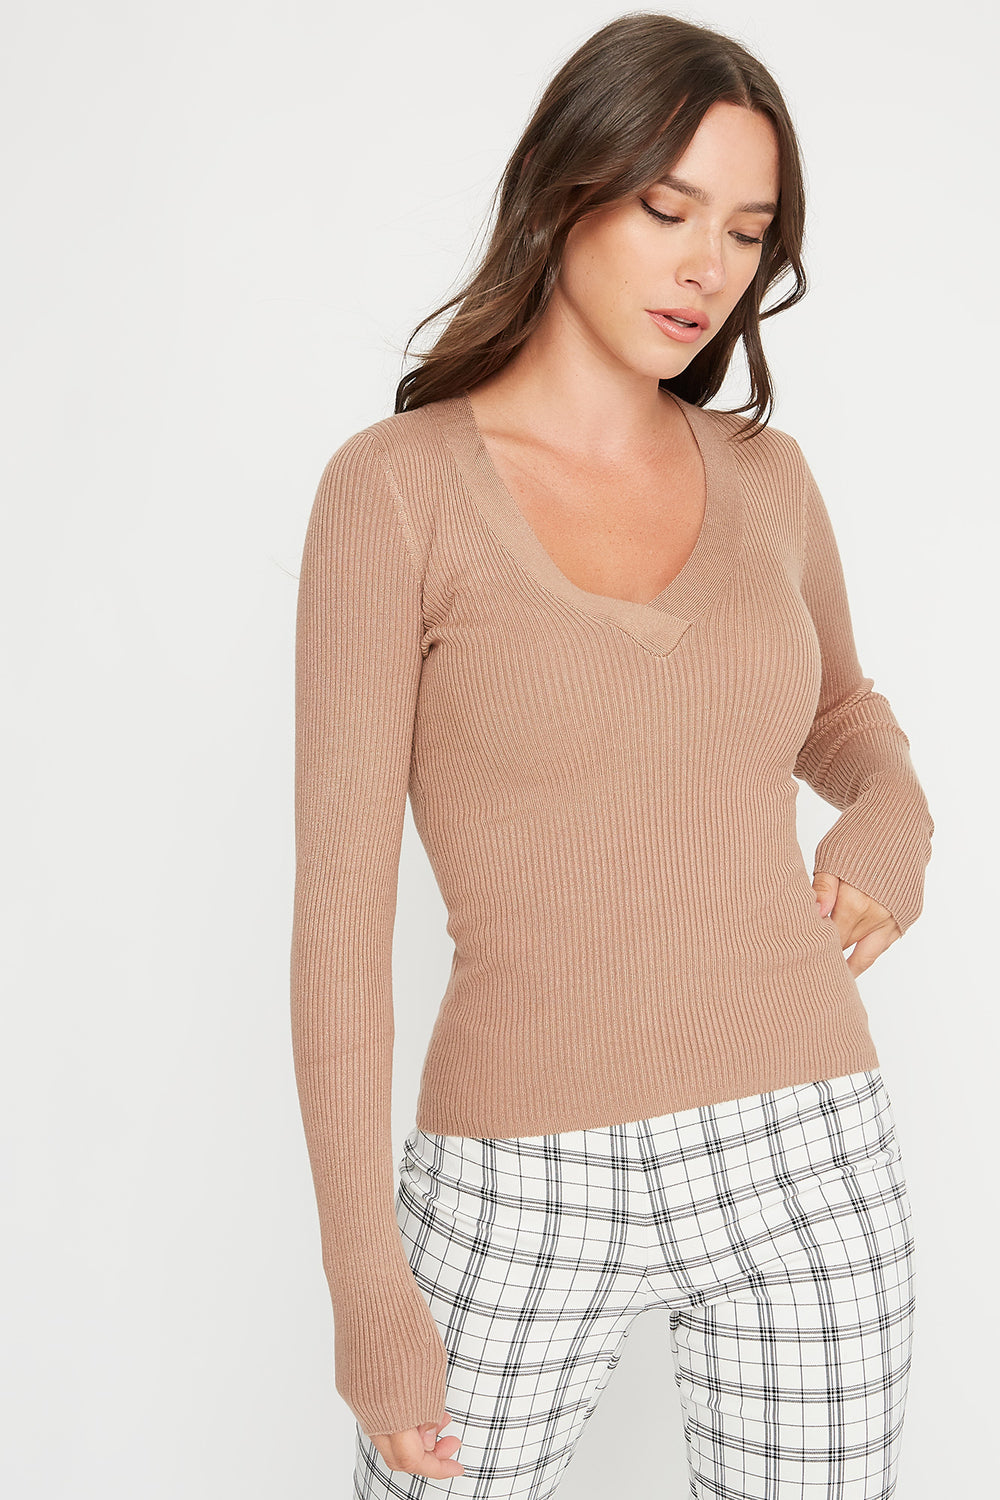 V-Neck Ribbed Knit Lightweight Sweater Brown